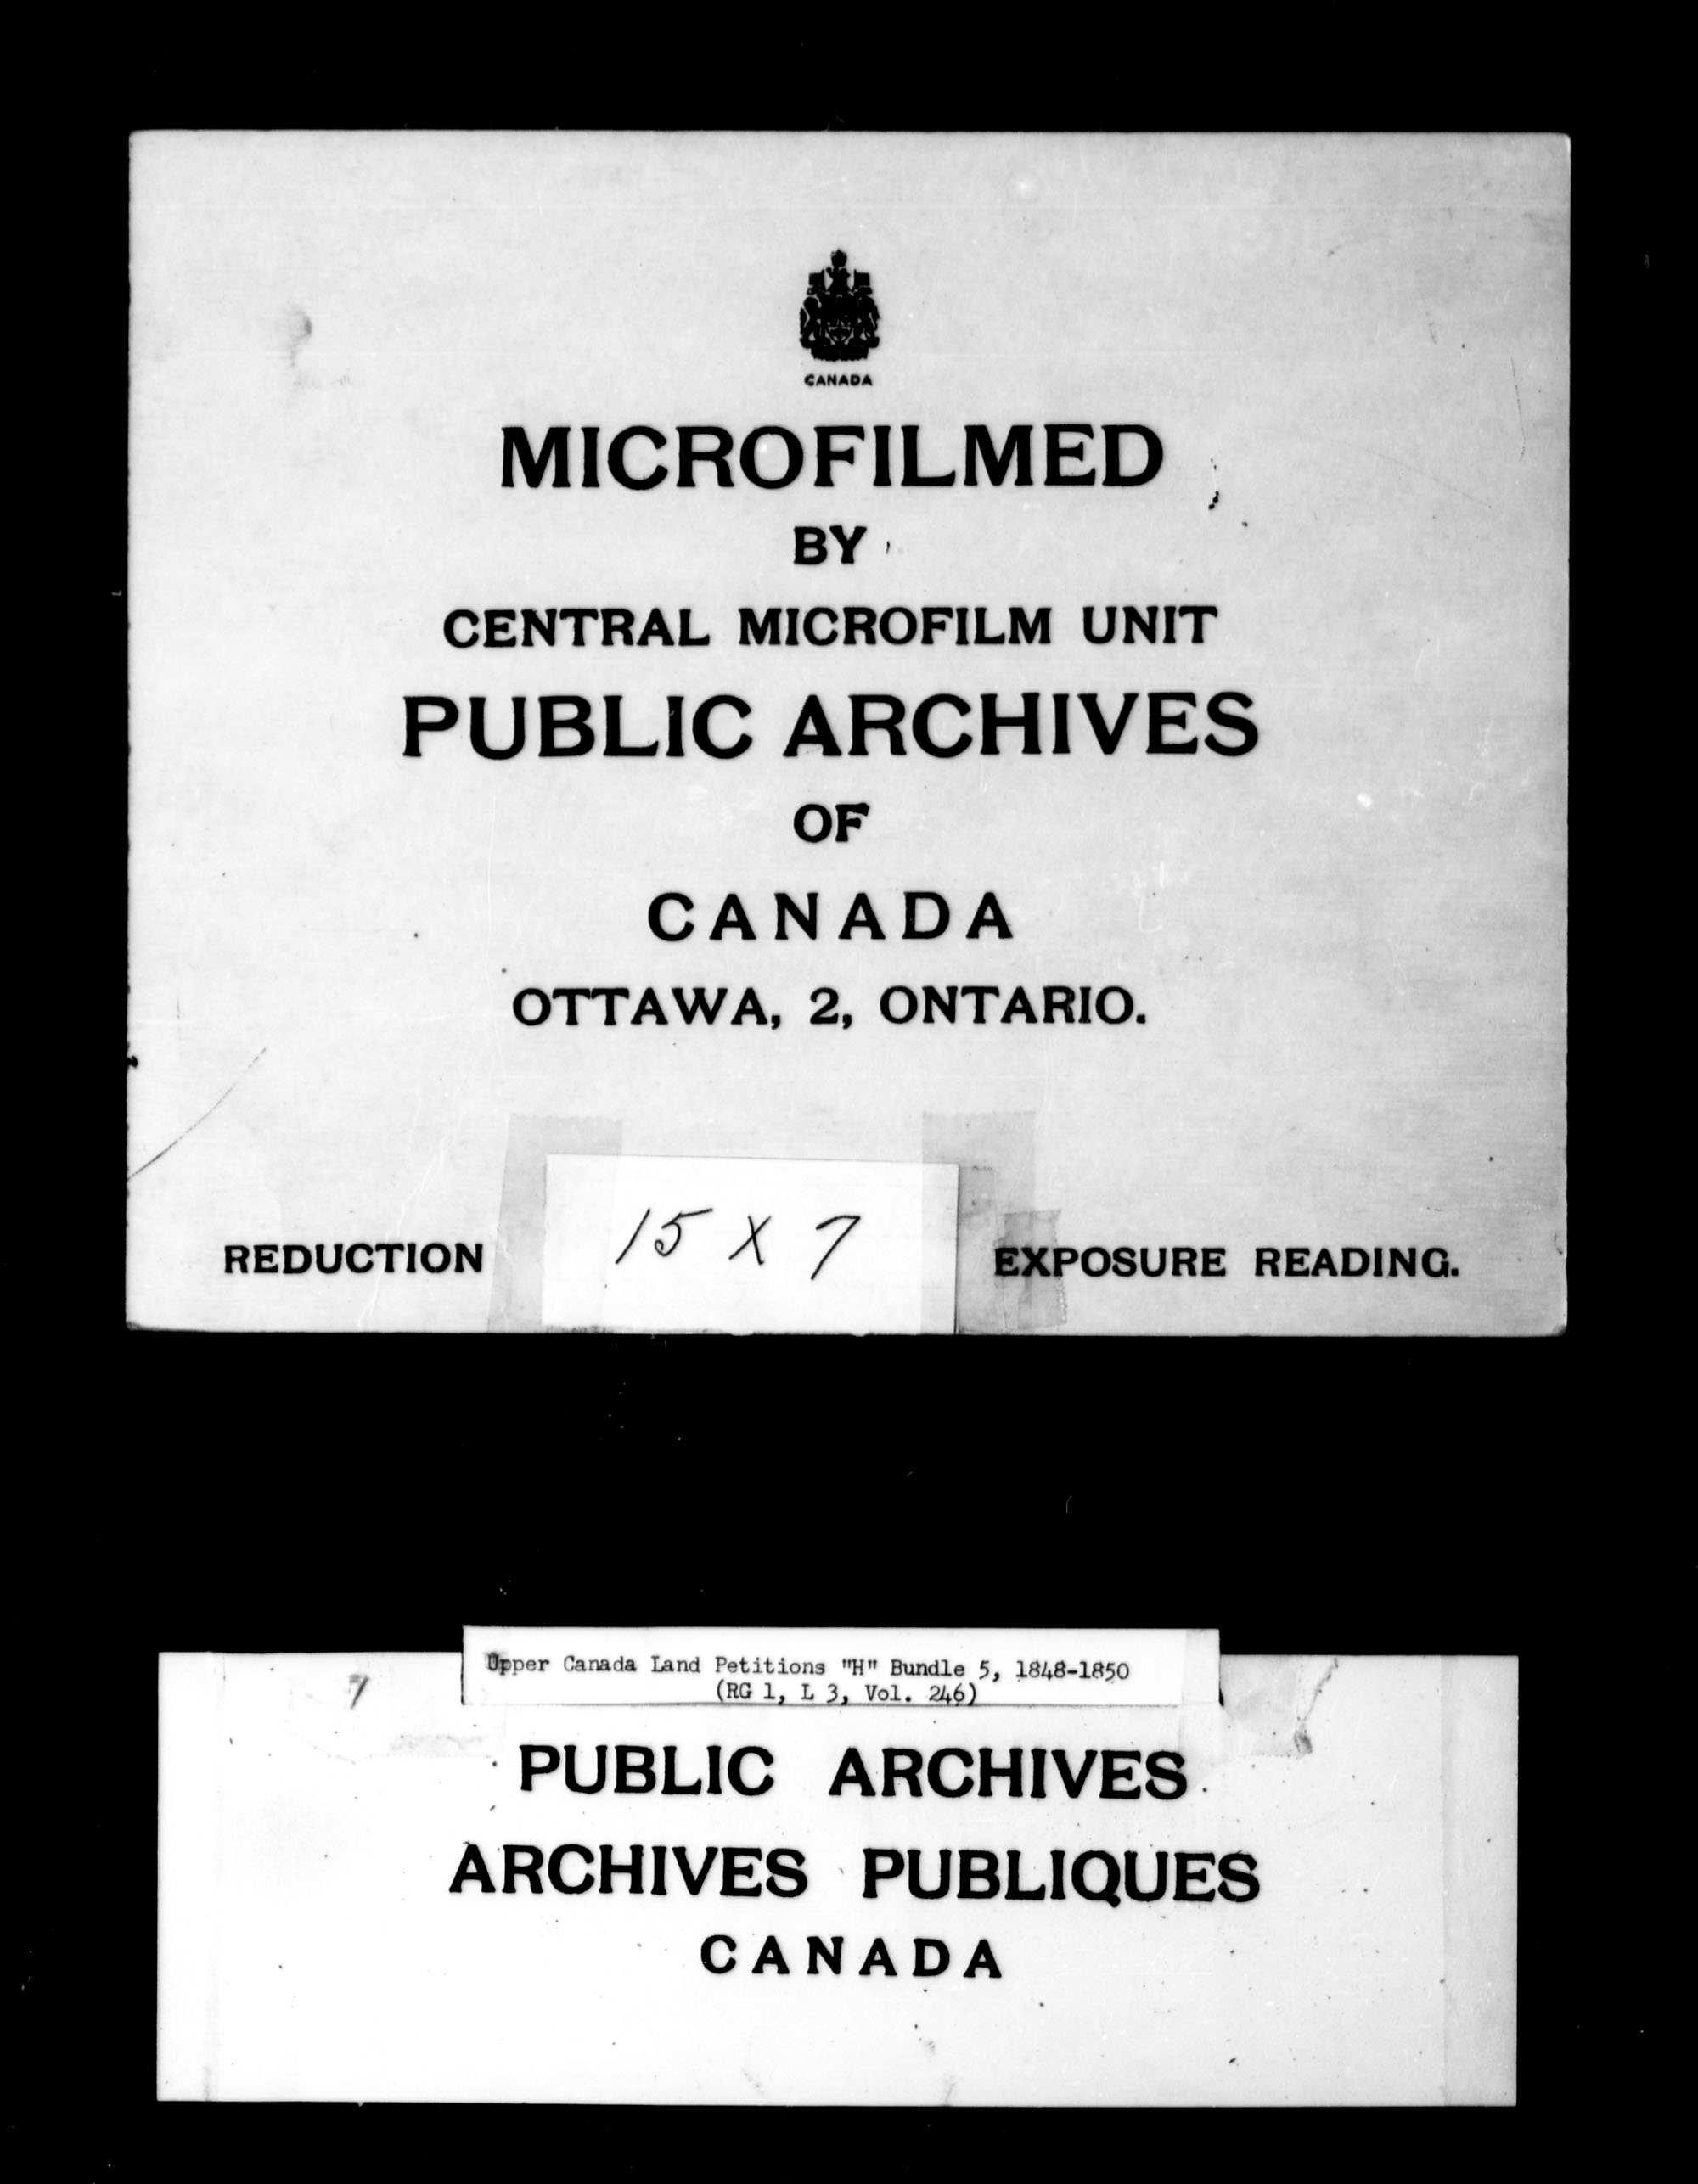 Title: Upper Canada Land Petitions (1763-1865) - Mikan Number: 205131 - Microform: c-2101